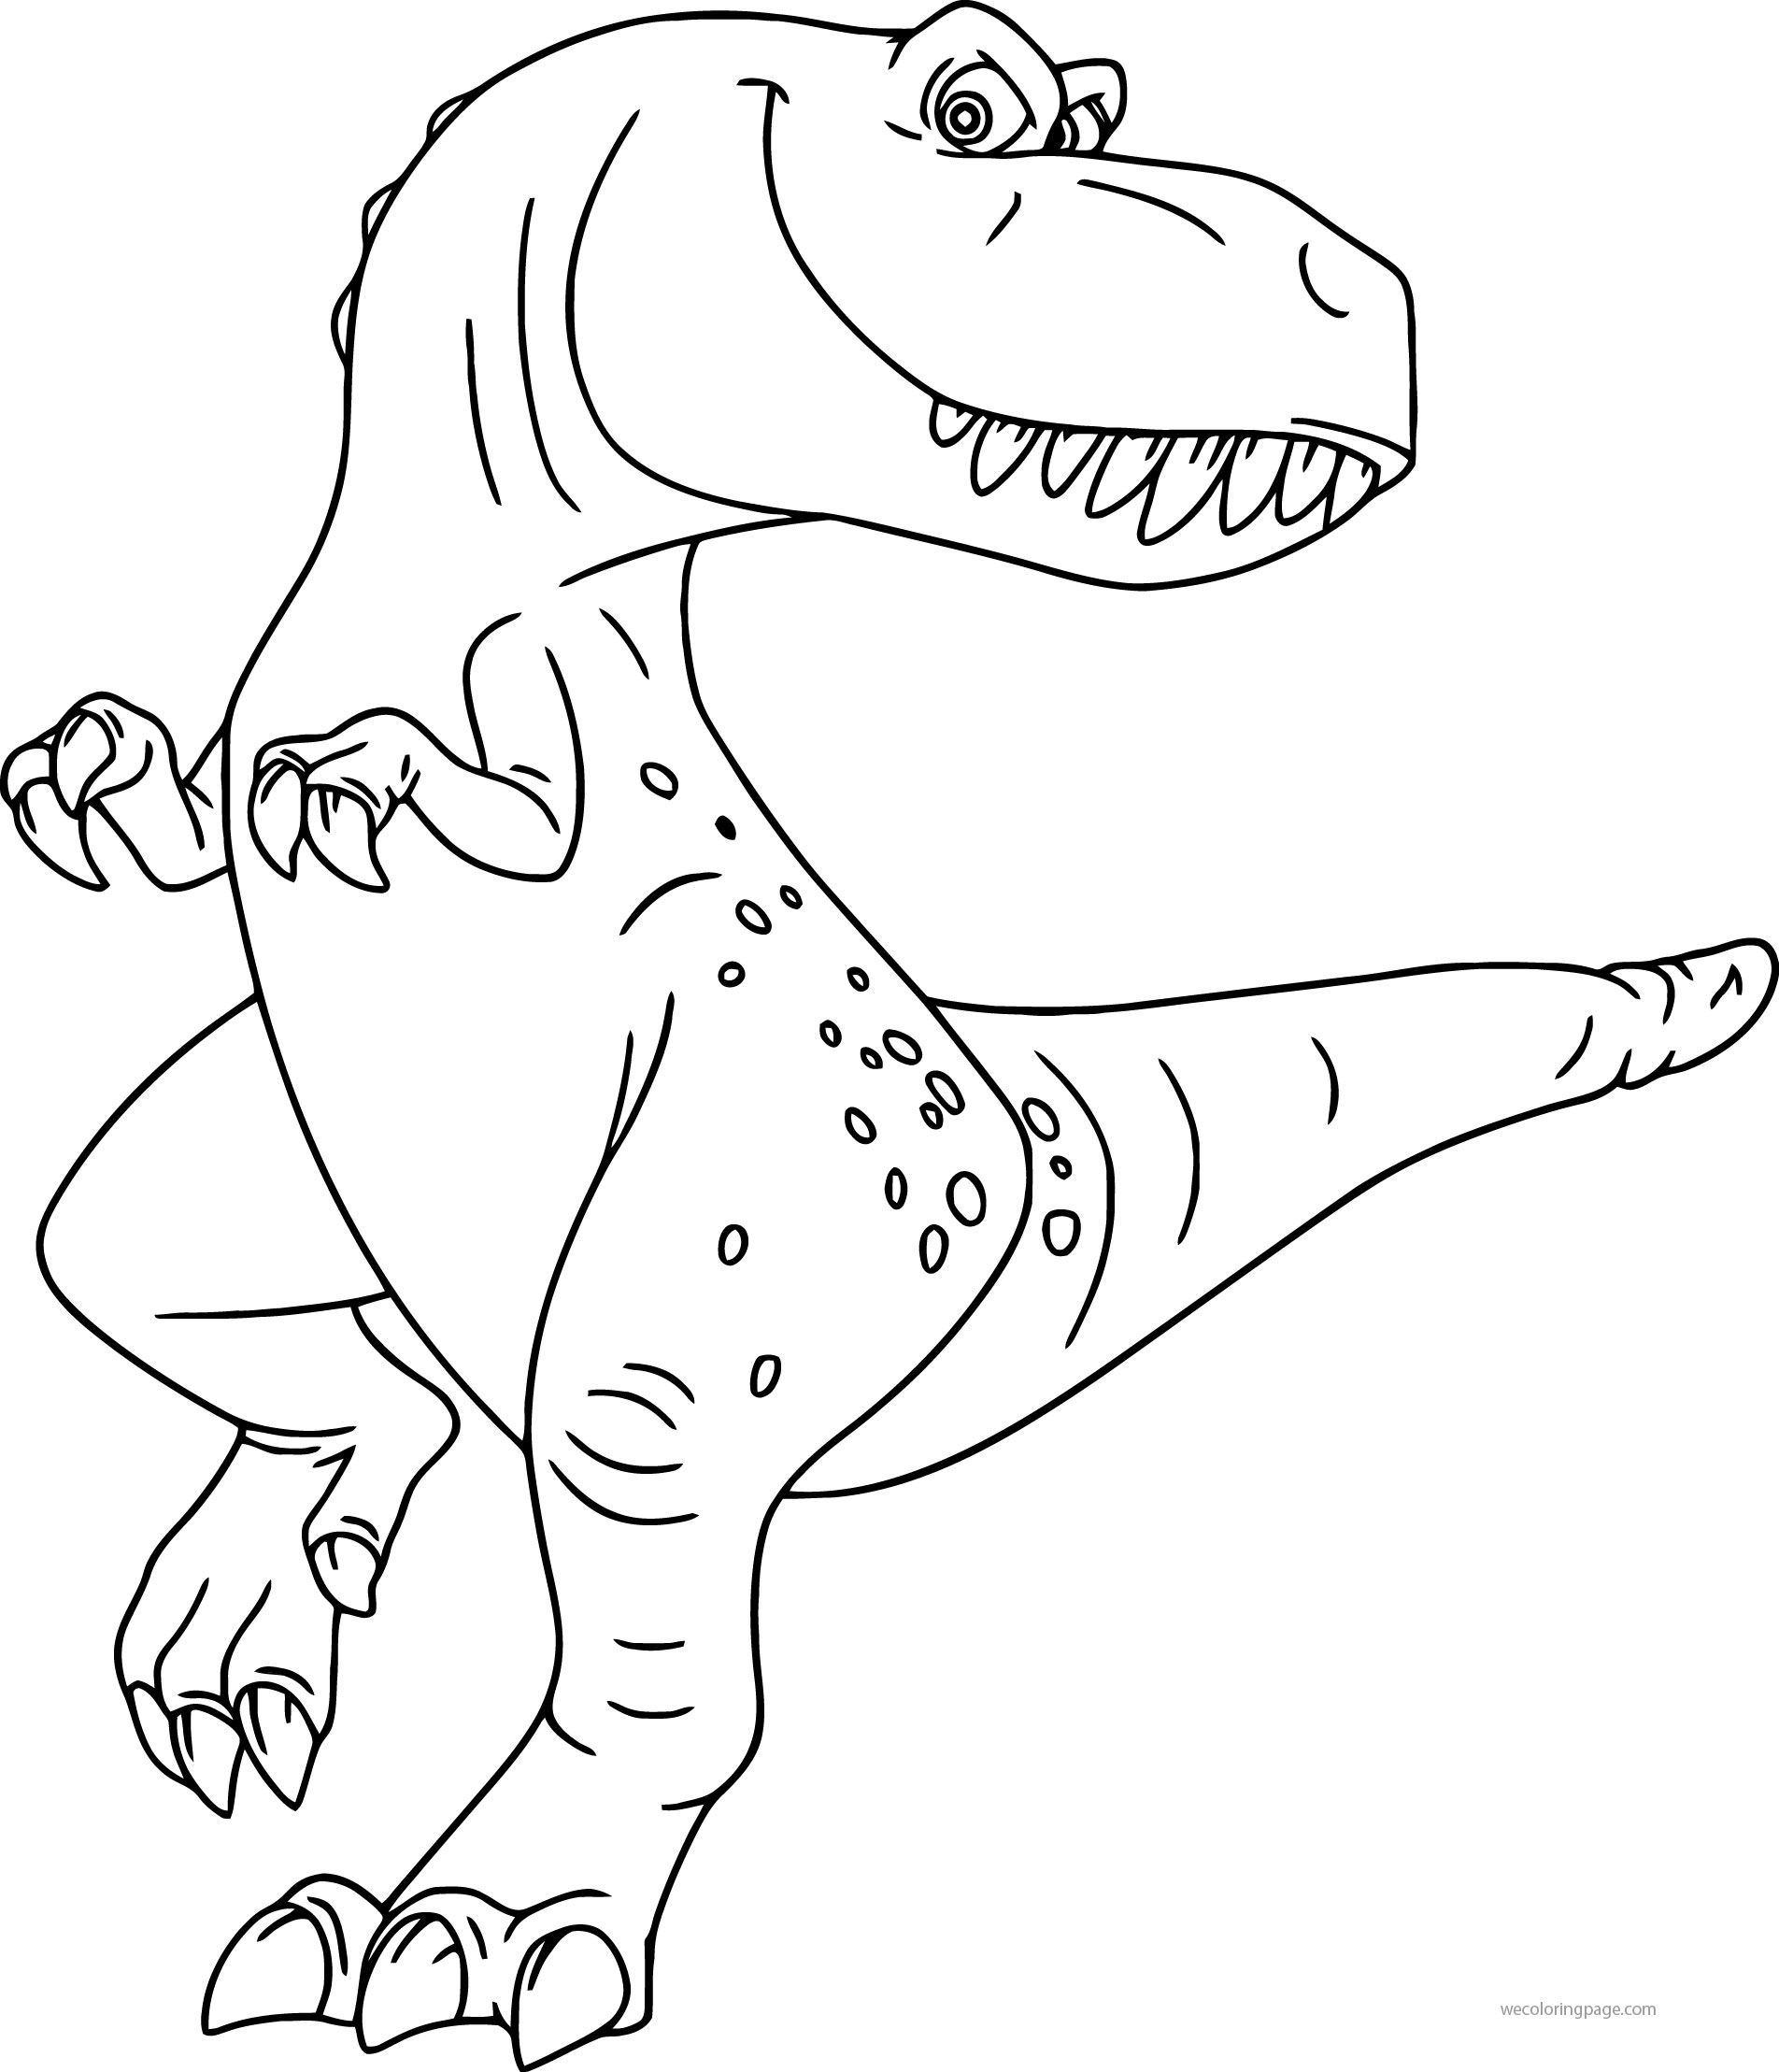 The Good Dinosaur Disney Ramsey Cartoon Coloring Pages